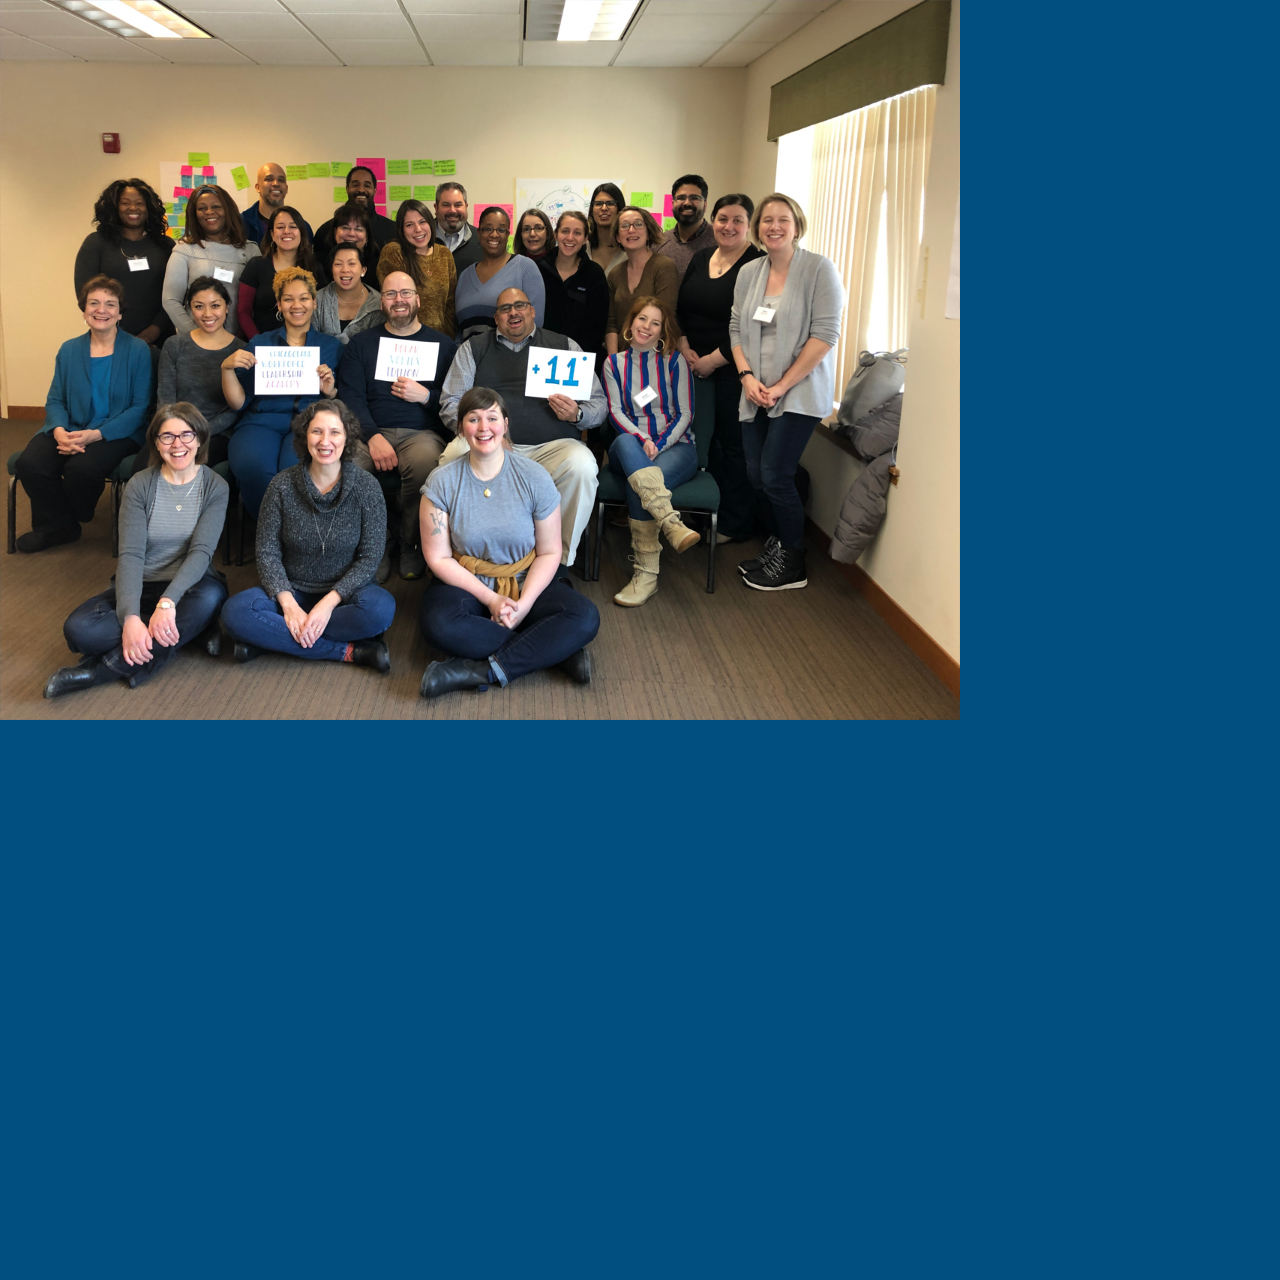 Members of the Chicagoland Workforce Leadership Academy Class of 2019